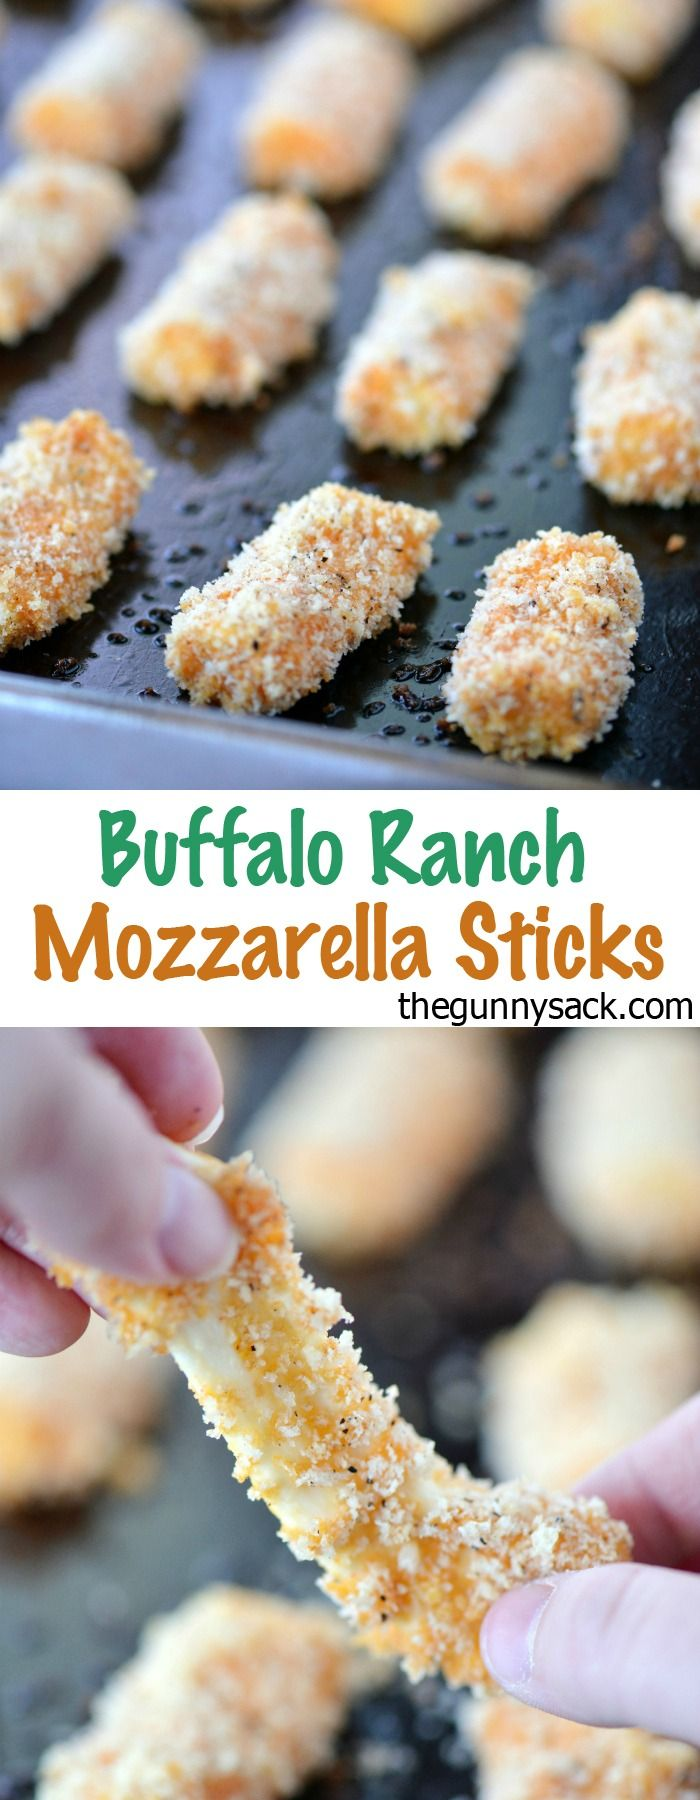 Buffalo Ranch Mozzarella Sticks are sure to be a WINNER at any party! #client